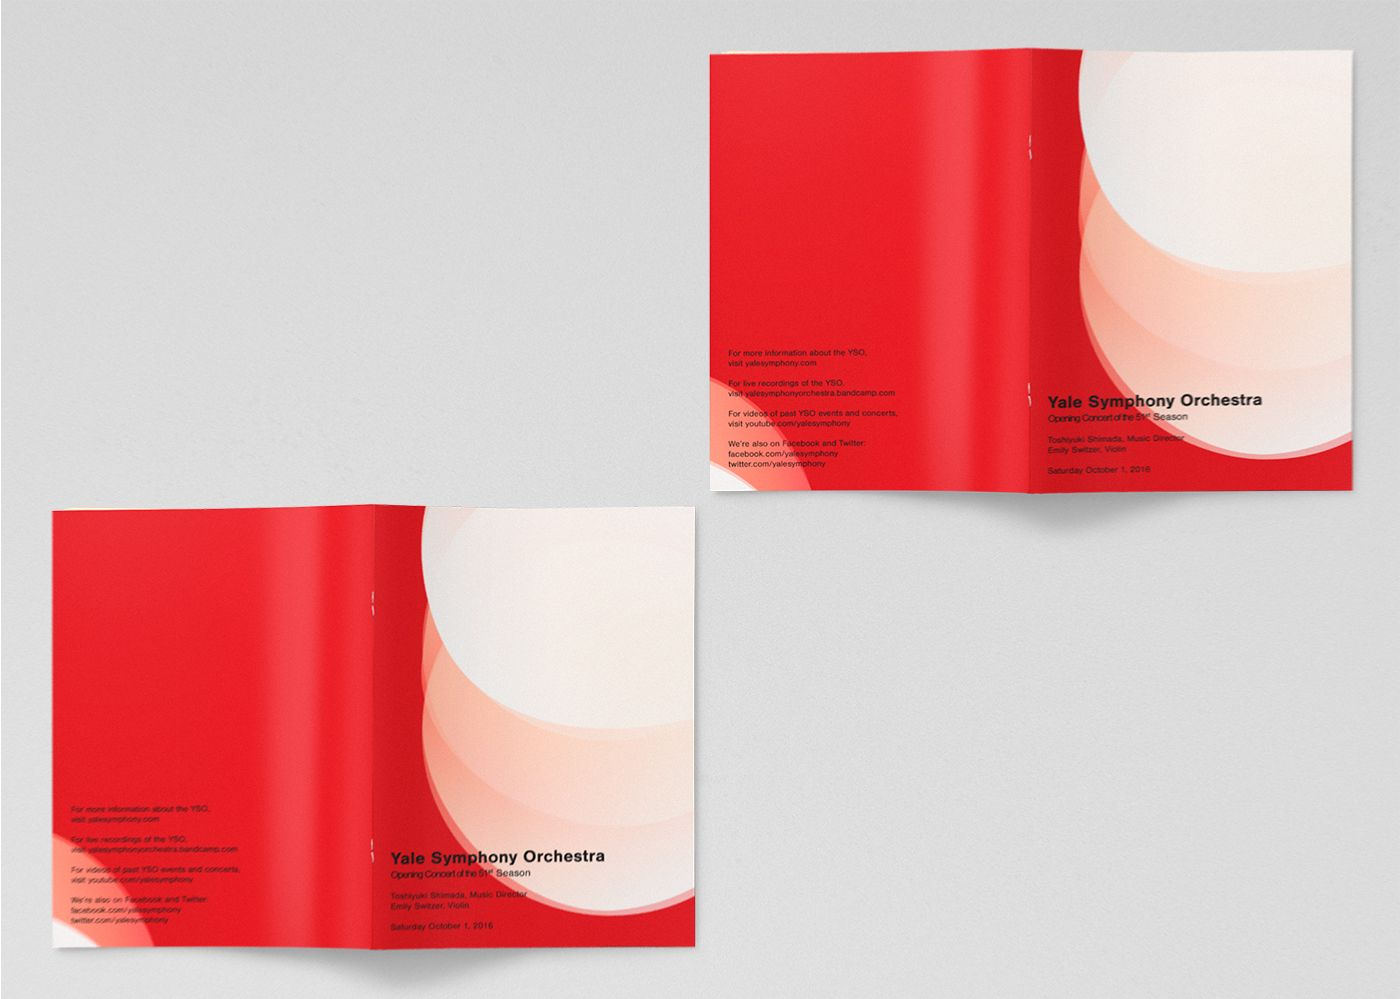 Programs for the 51st Season's Opening Concert